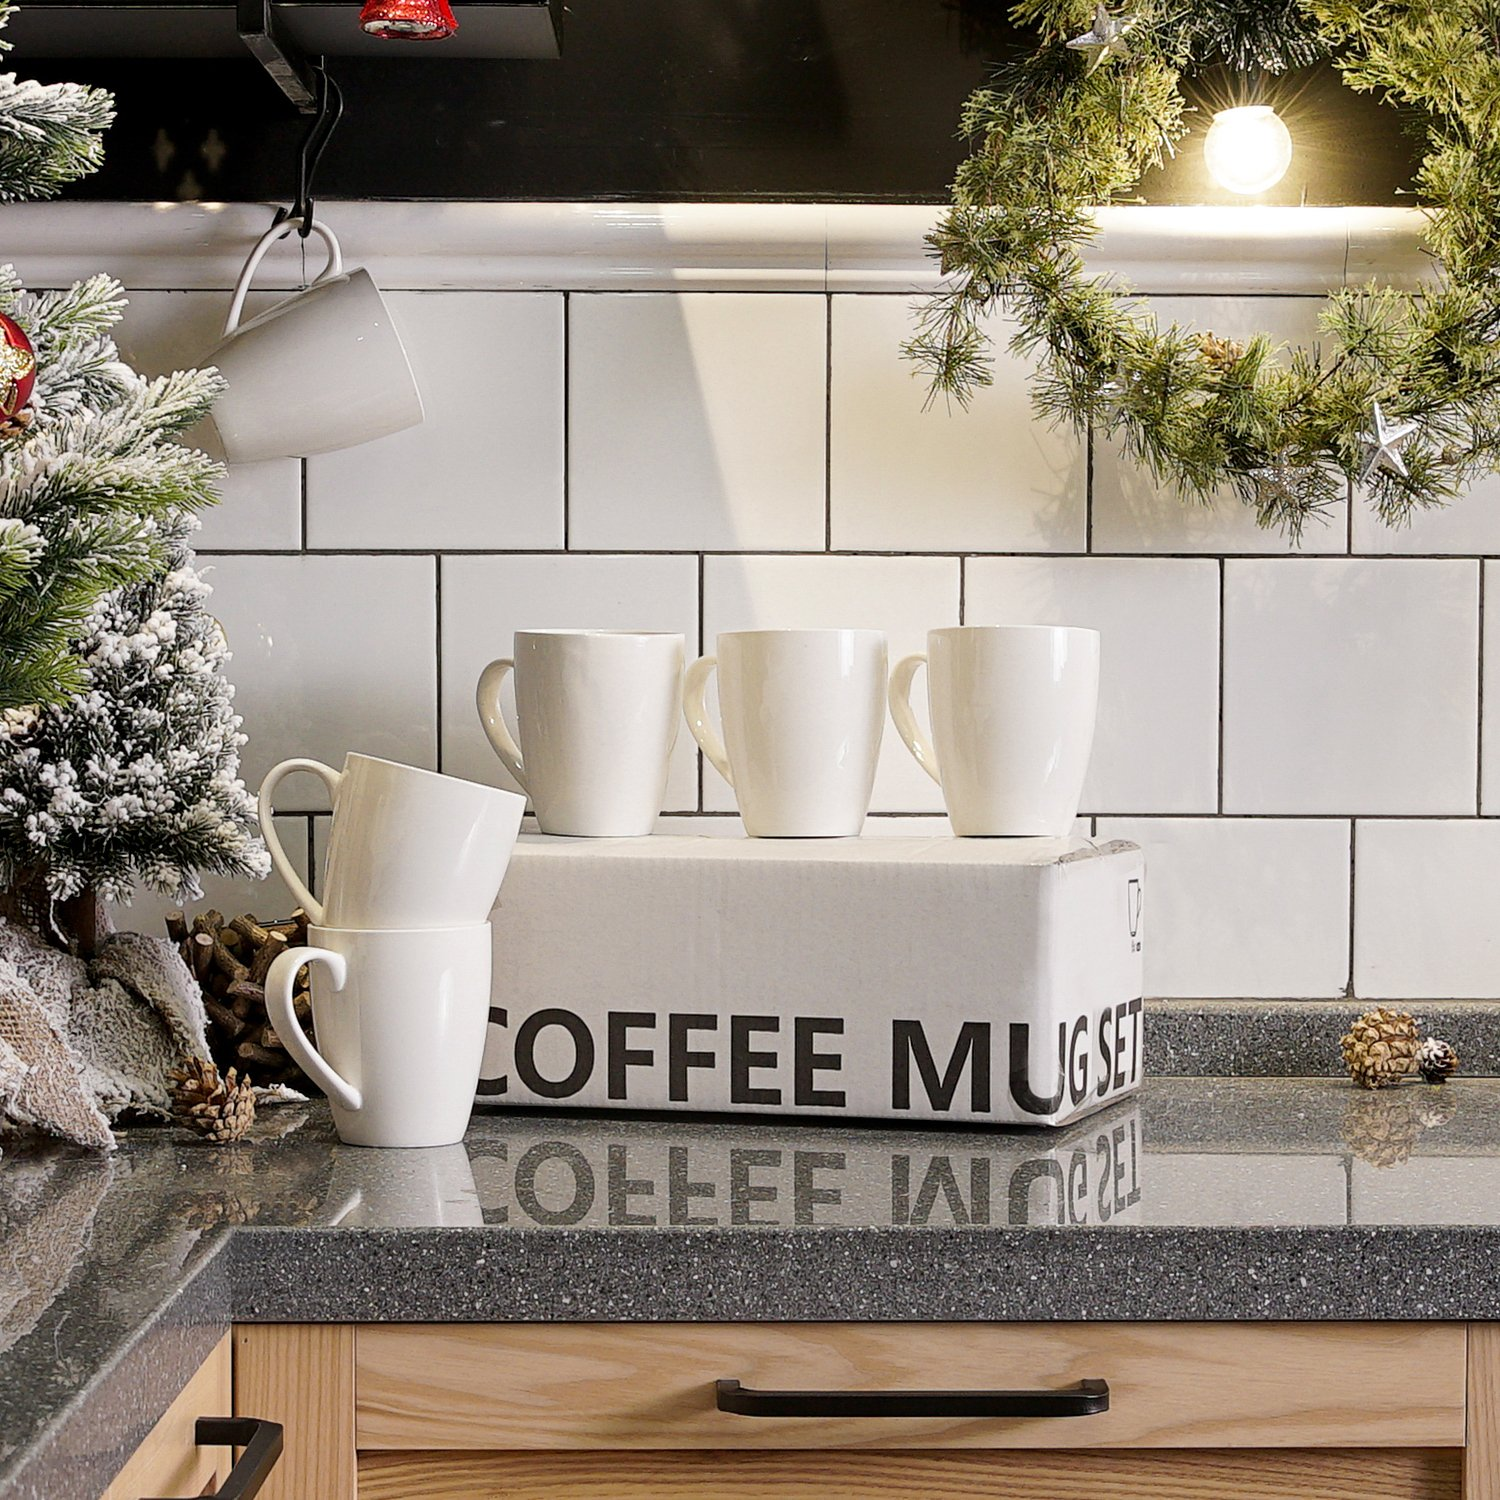 Sweese 6201 Porcelain Mugs - 16 Ounce for Coffee, Tea, Cocoa, Set of 6, White by Sweese (Image #3)